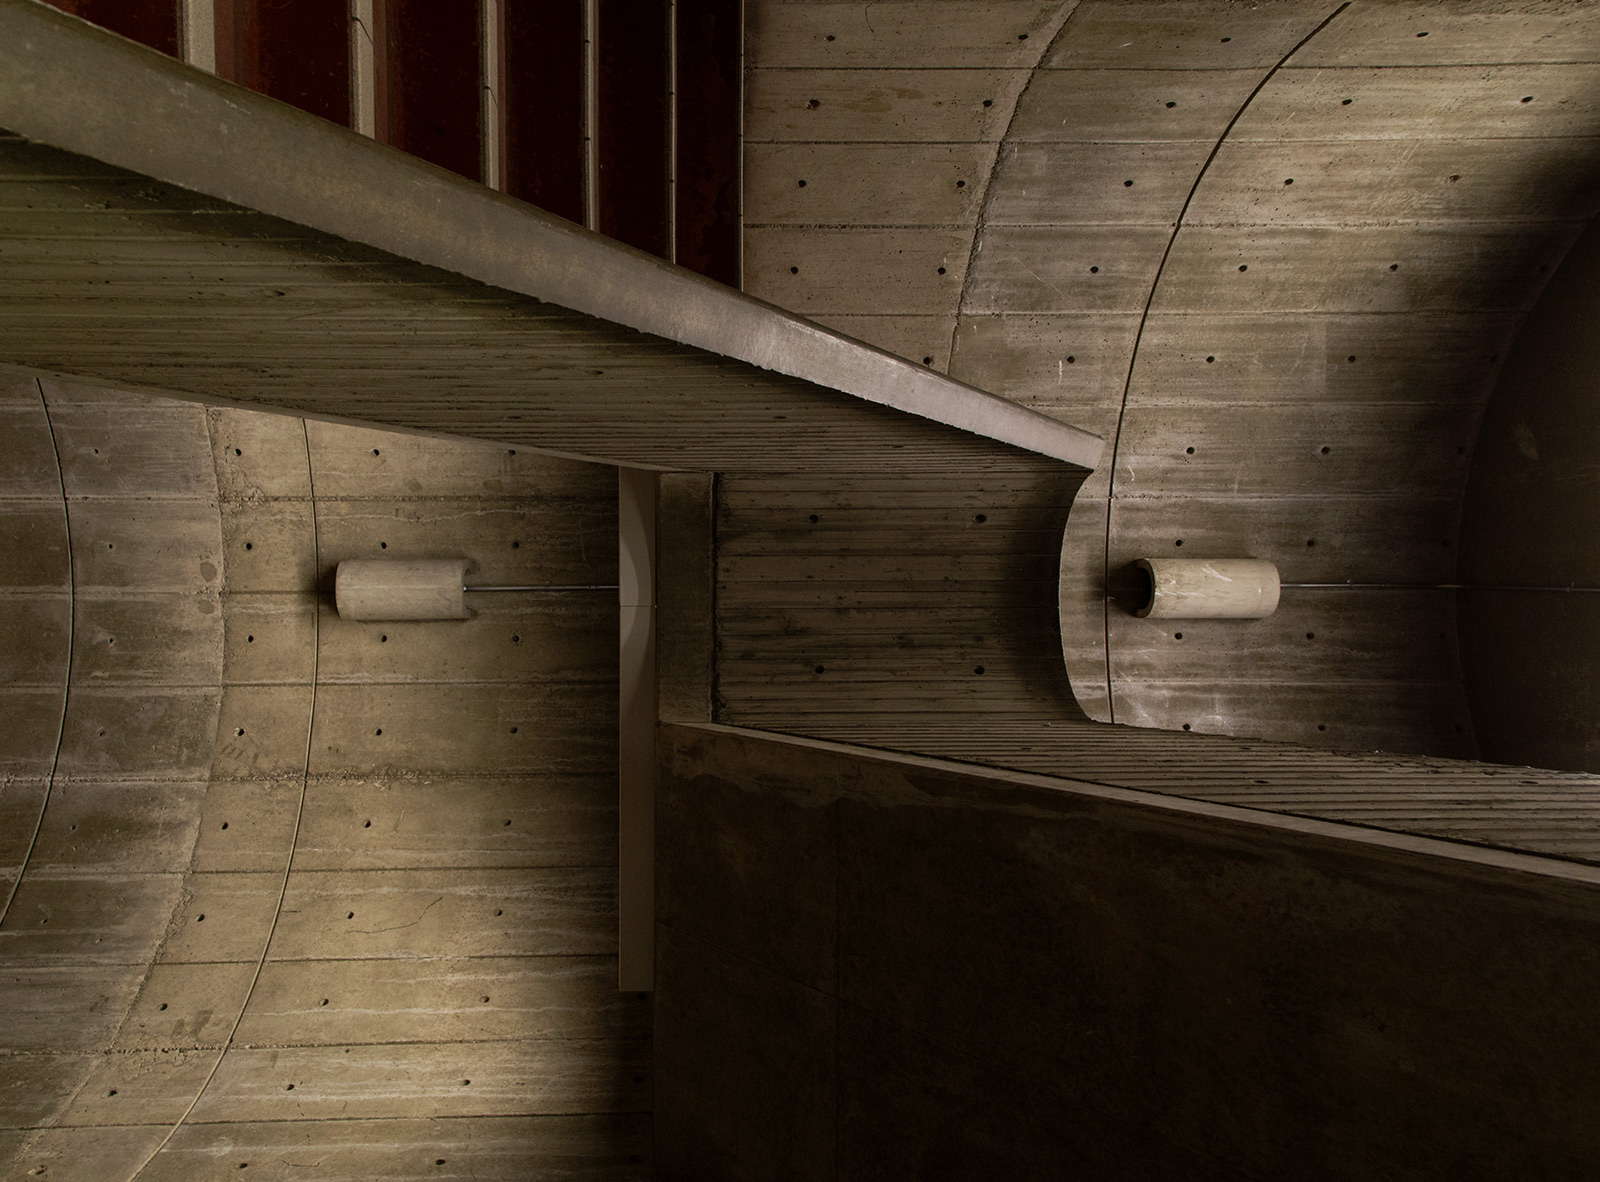 20150322. Sideways Stairwell and Sconces on a Concrete Campus. M